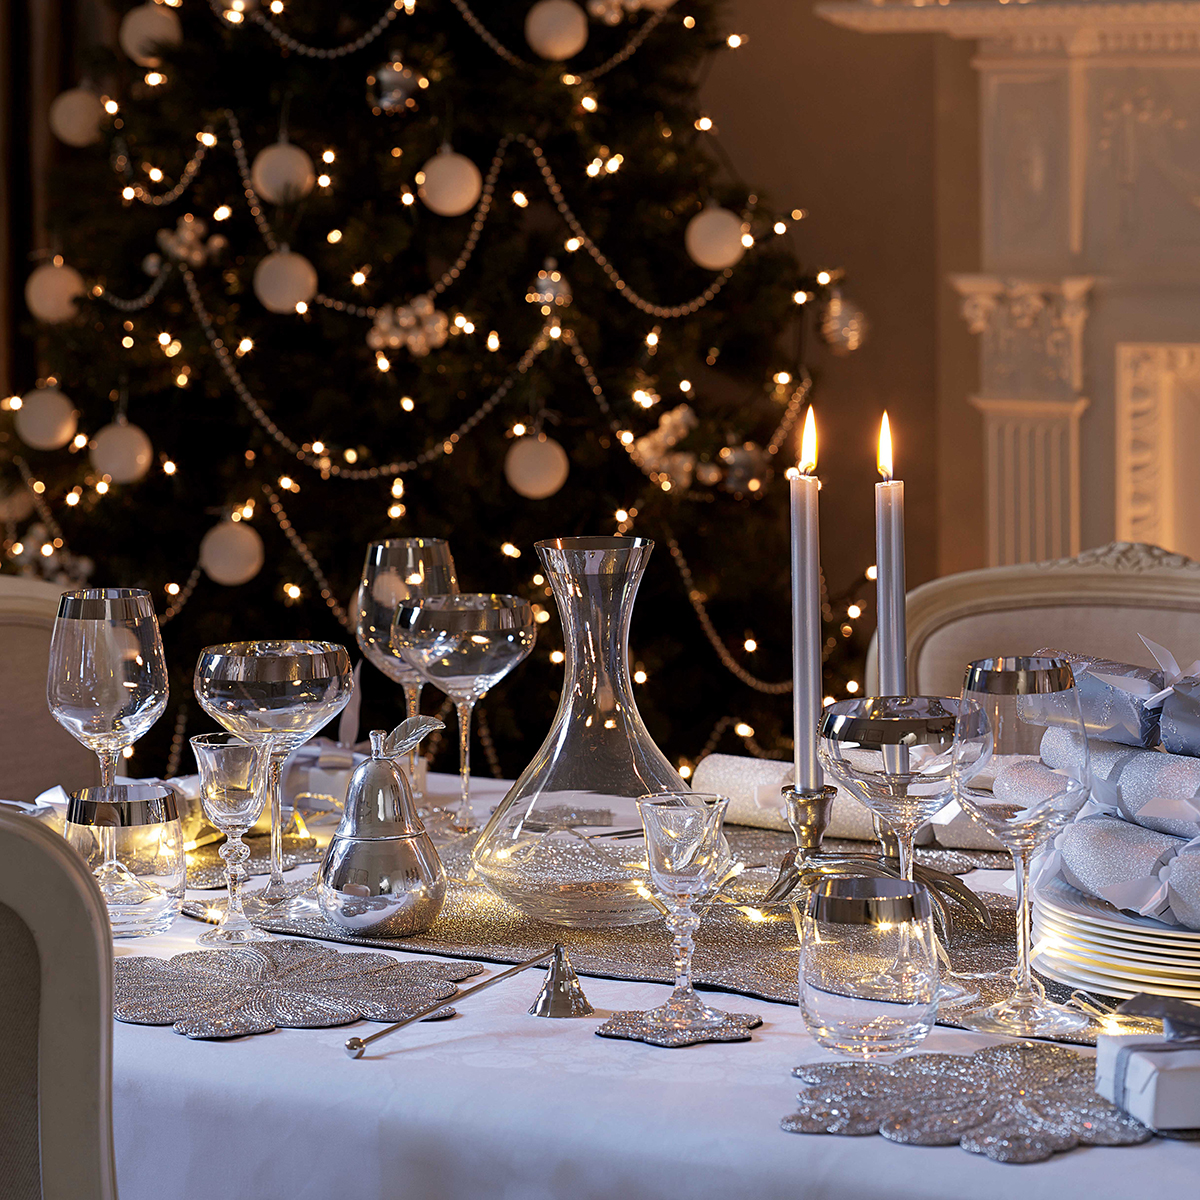 Elegant Christmas Themes: Christmas Table Decoration Ideas For Festive Dining